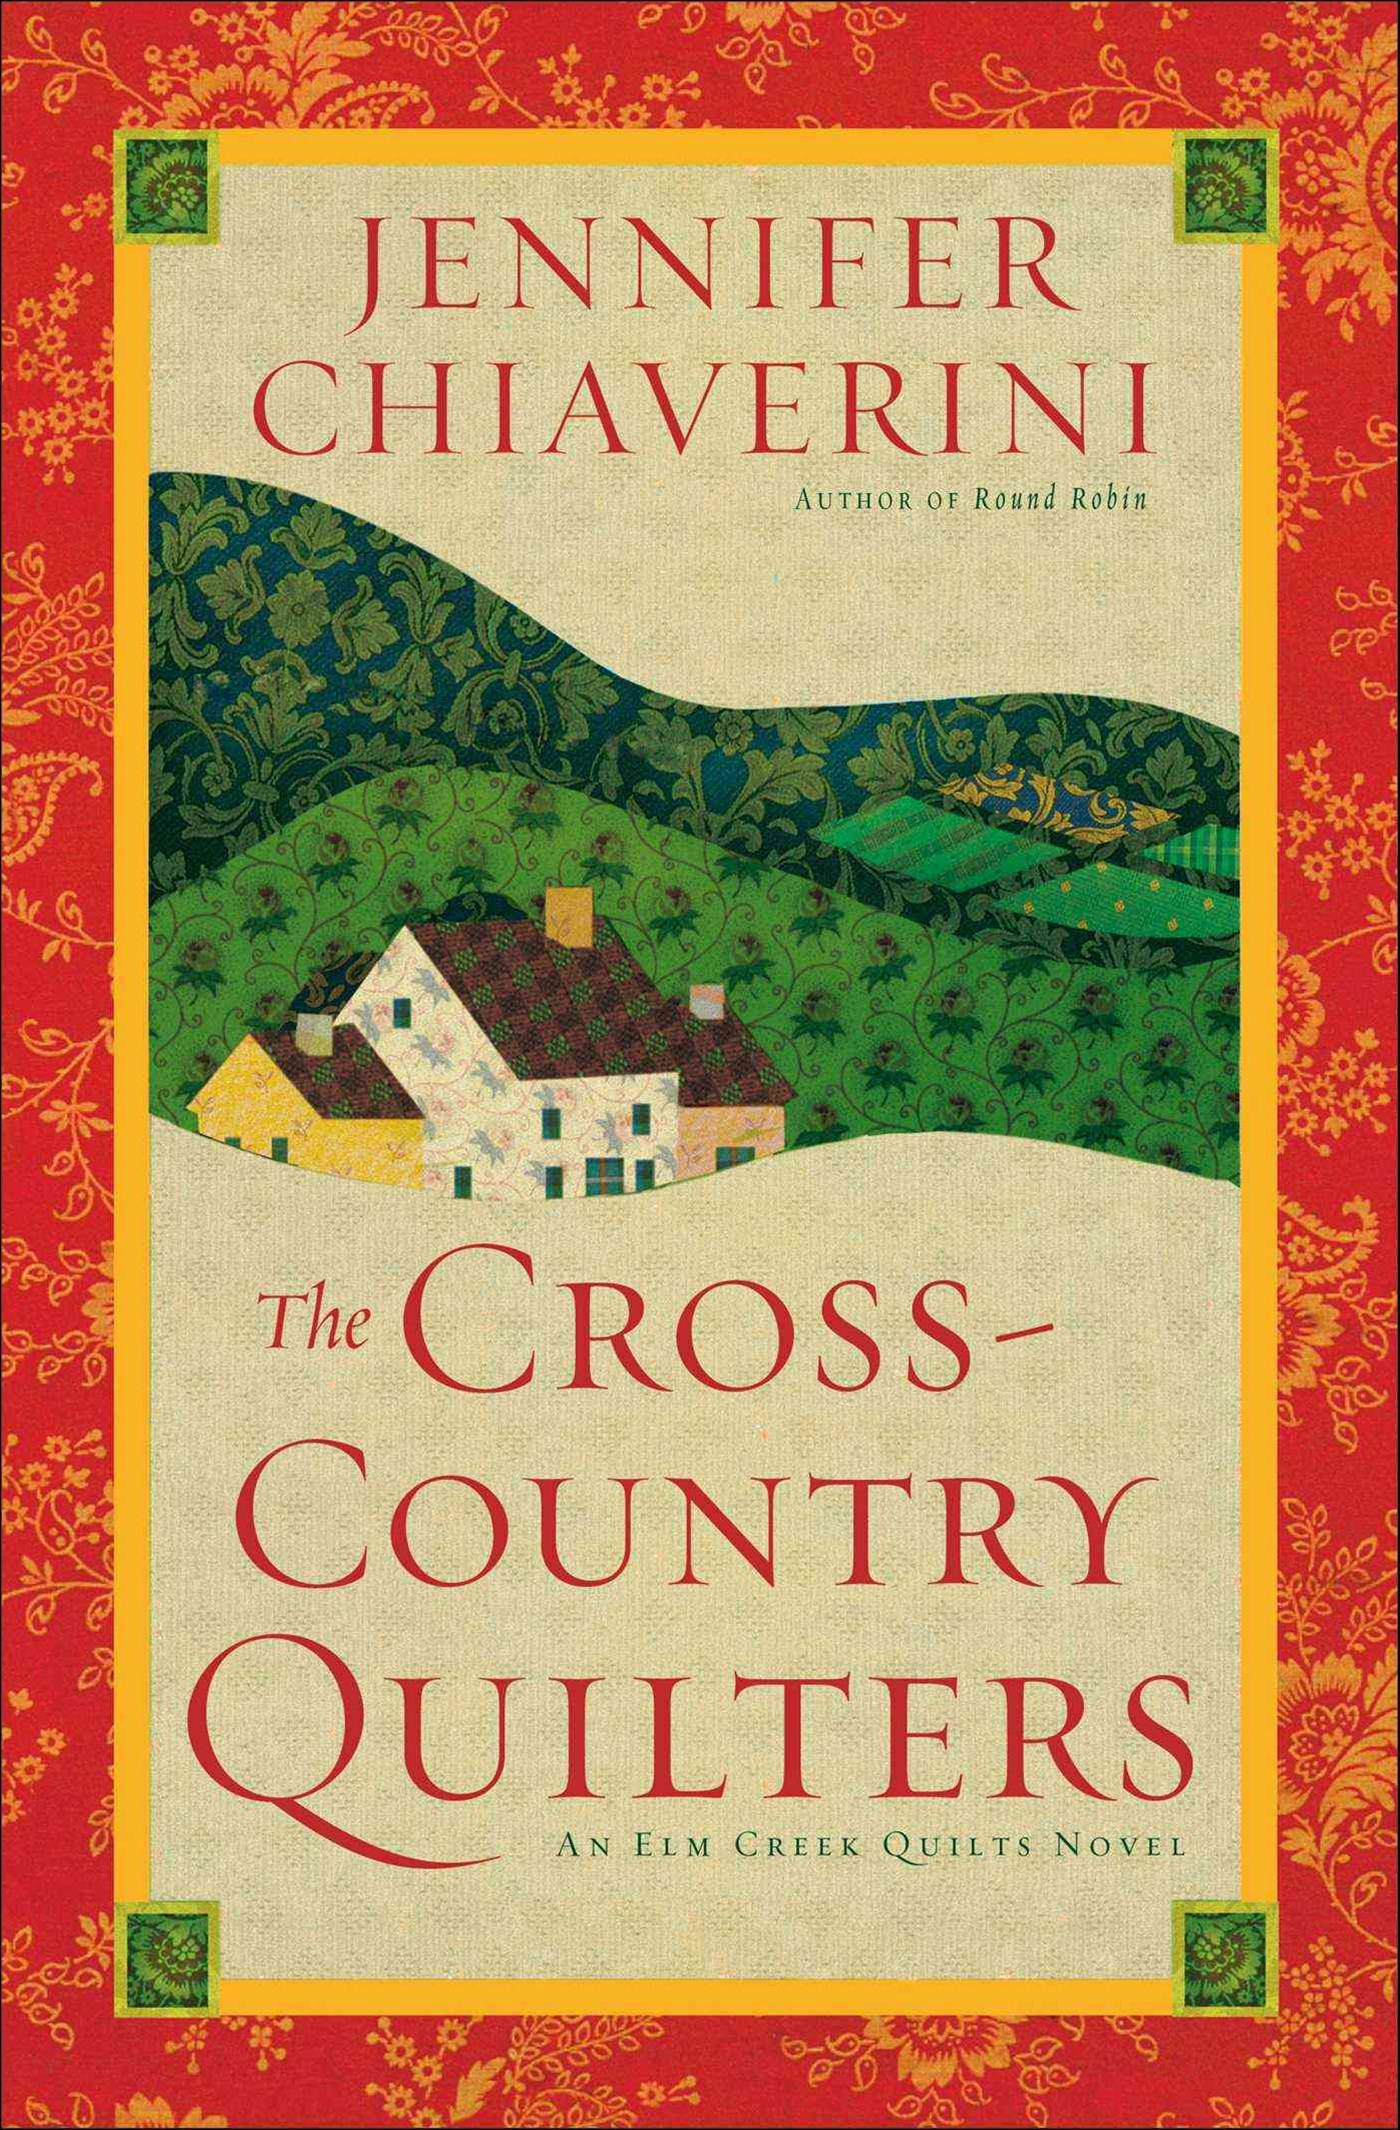 The Cross Country Quilters: An Elm Creek Quilts Novel